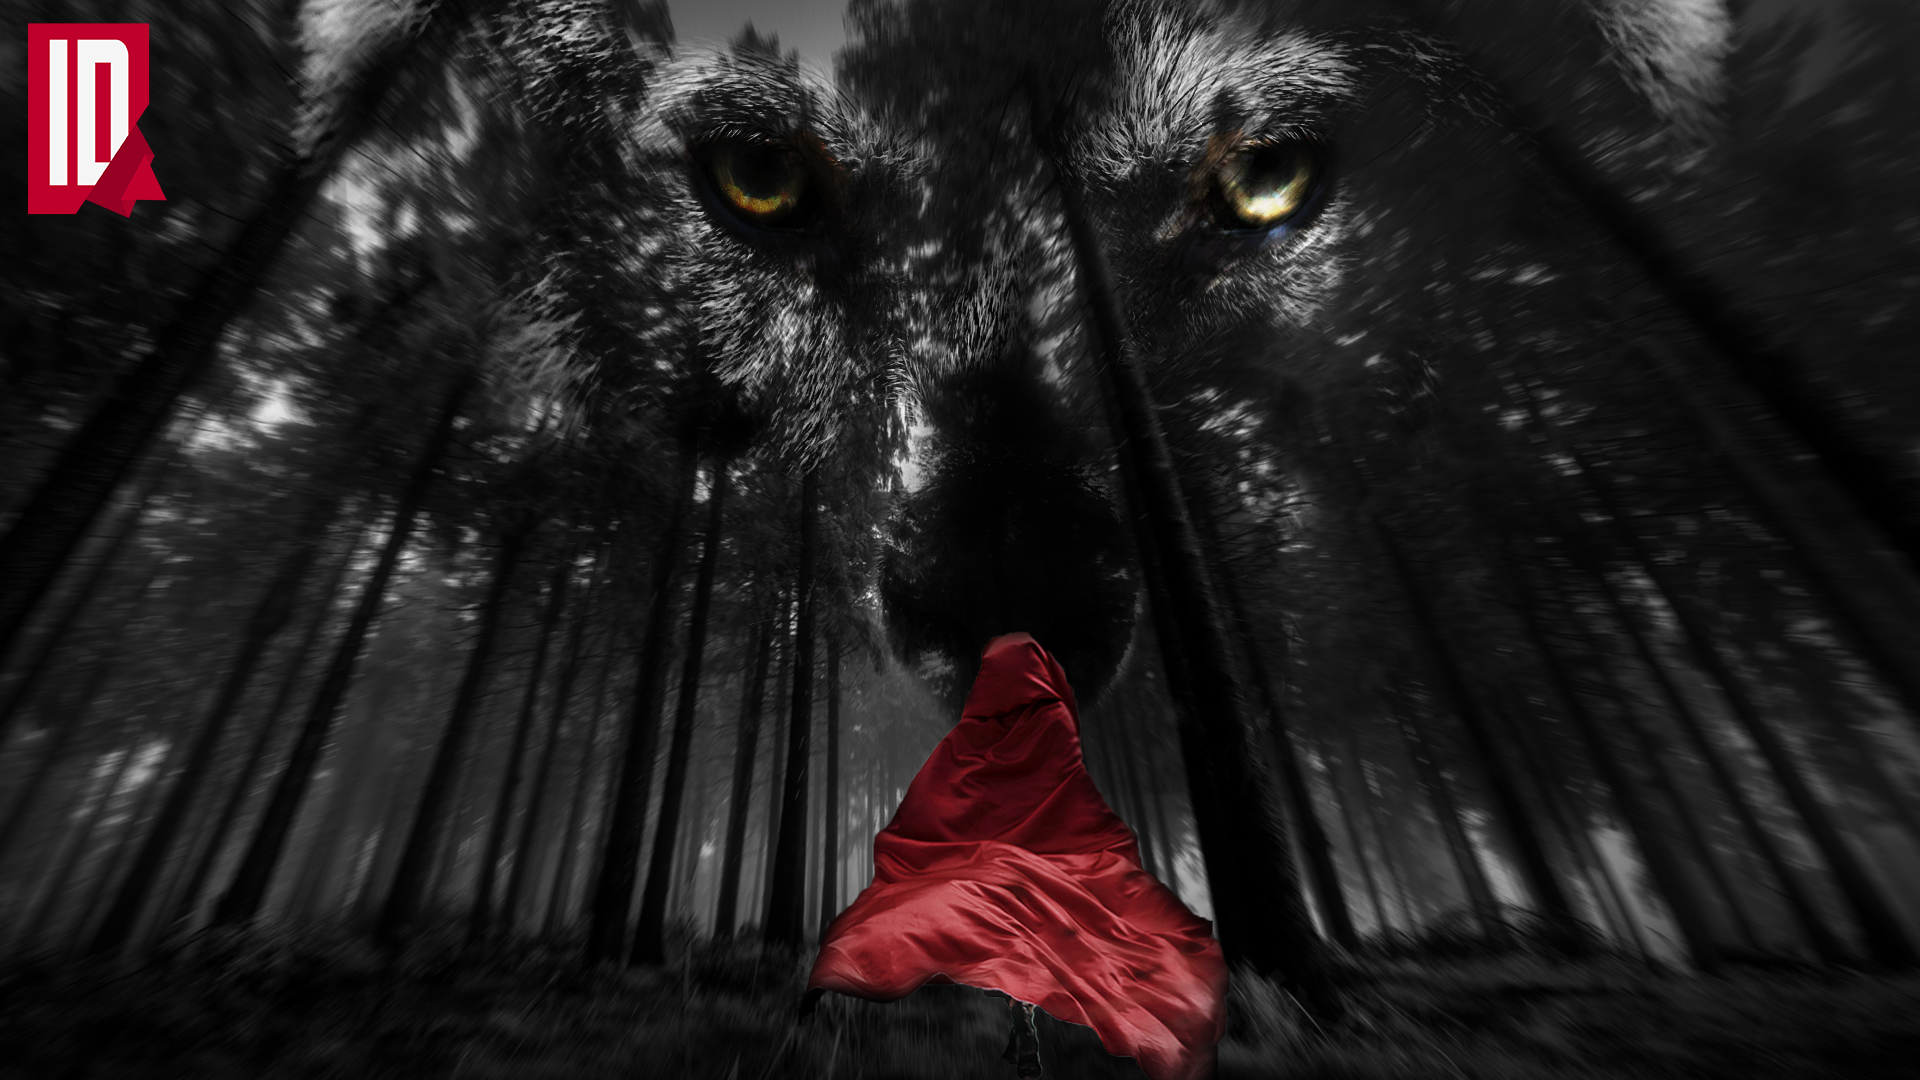 Little Red Riding Hood Wallpaper By Individualdesign On Deviantart